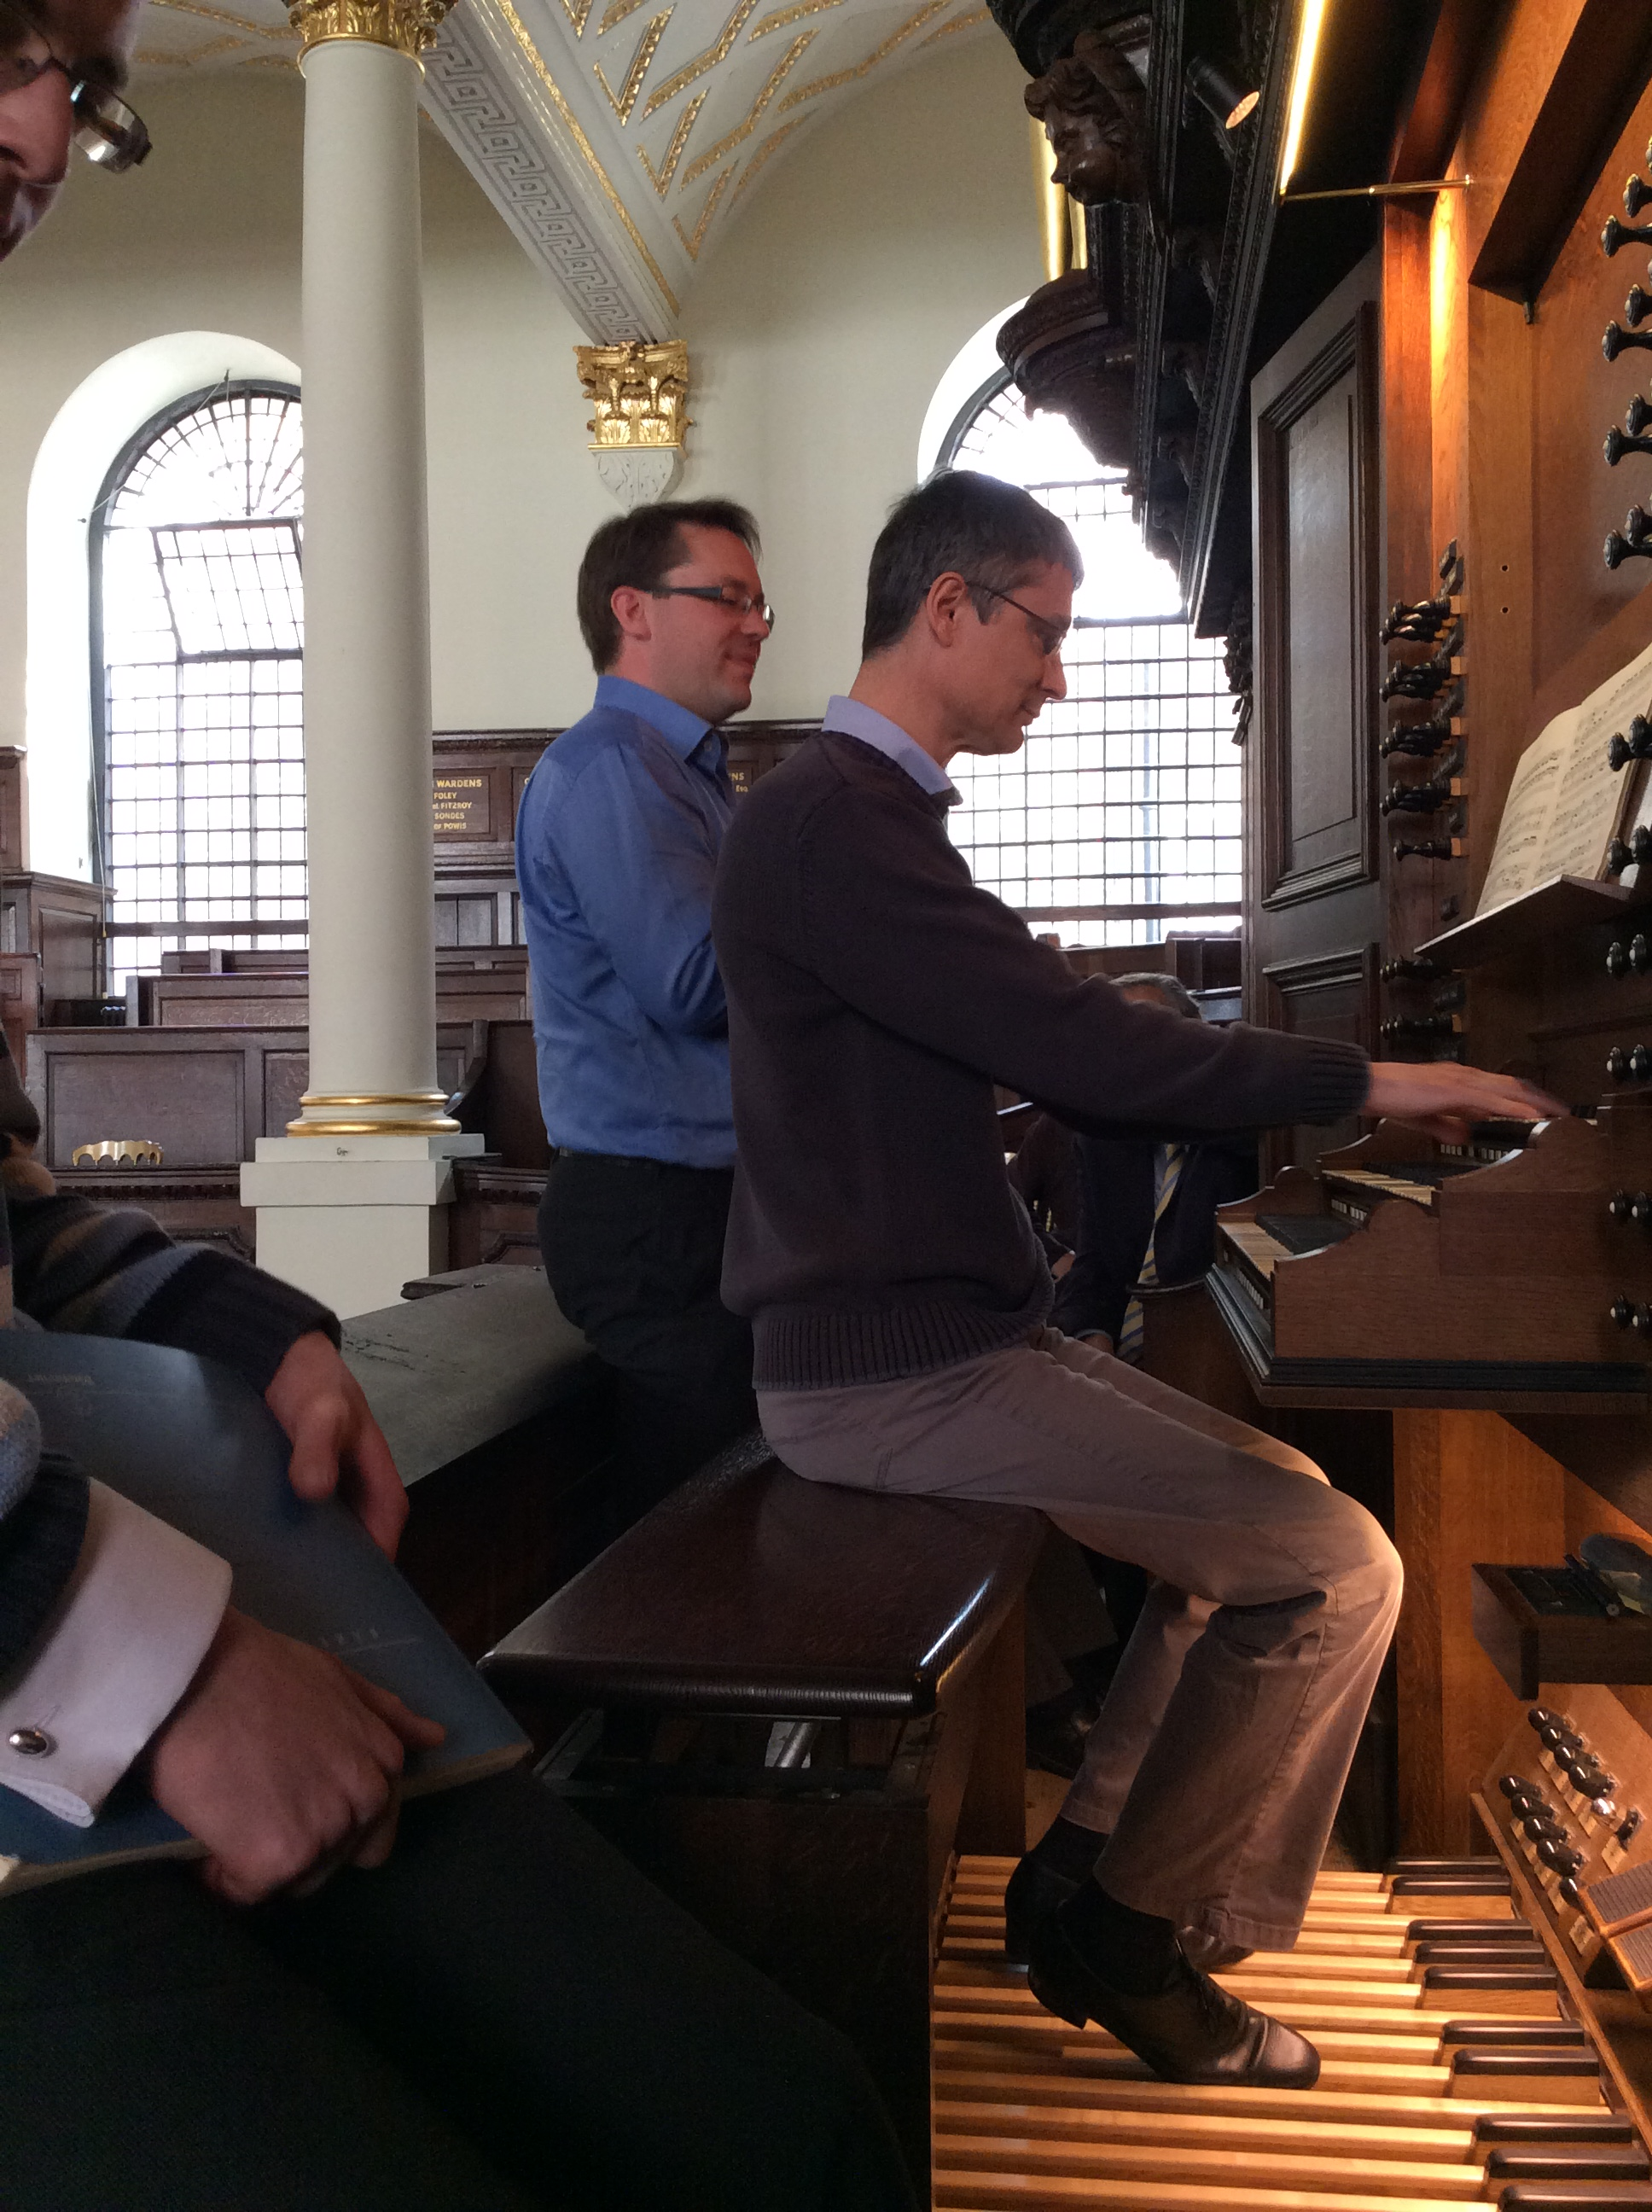 Image: Michael Hennin at the organ with Robin Walker